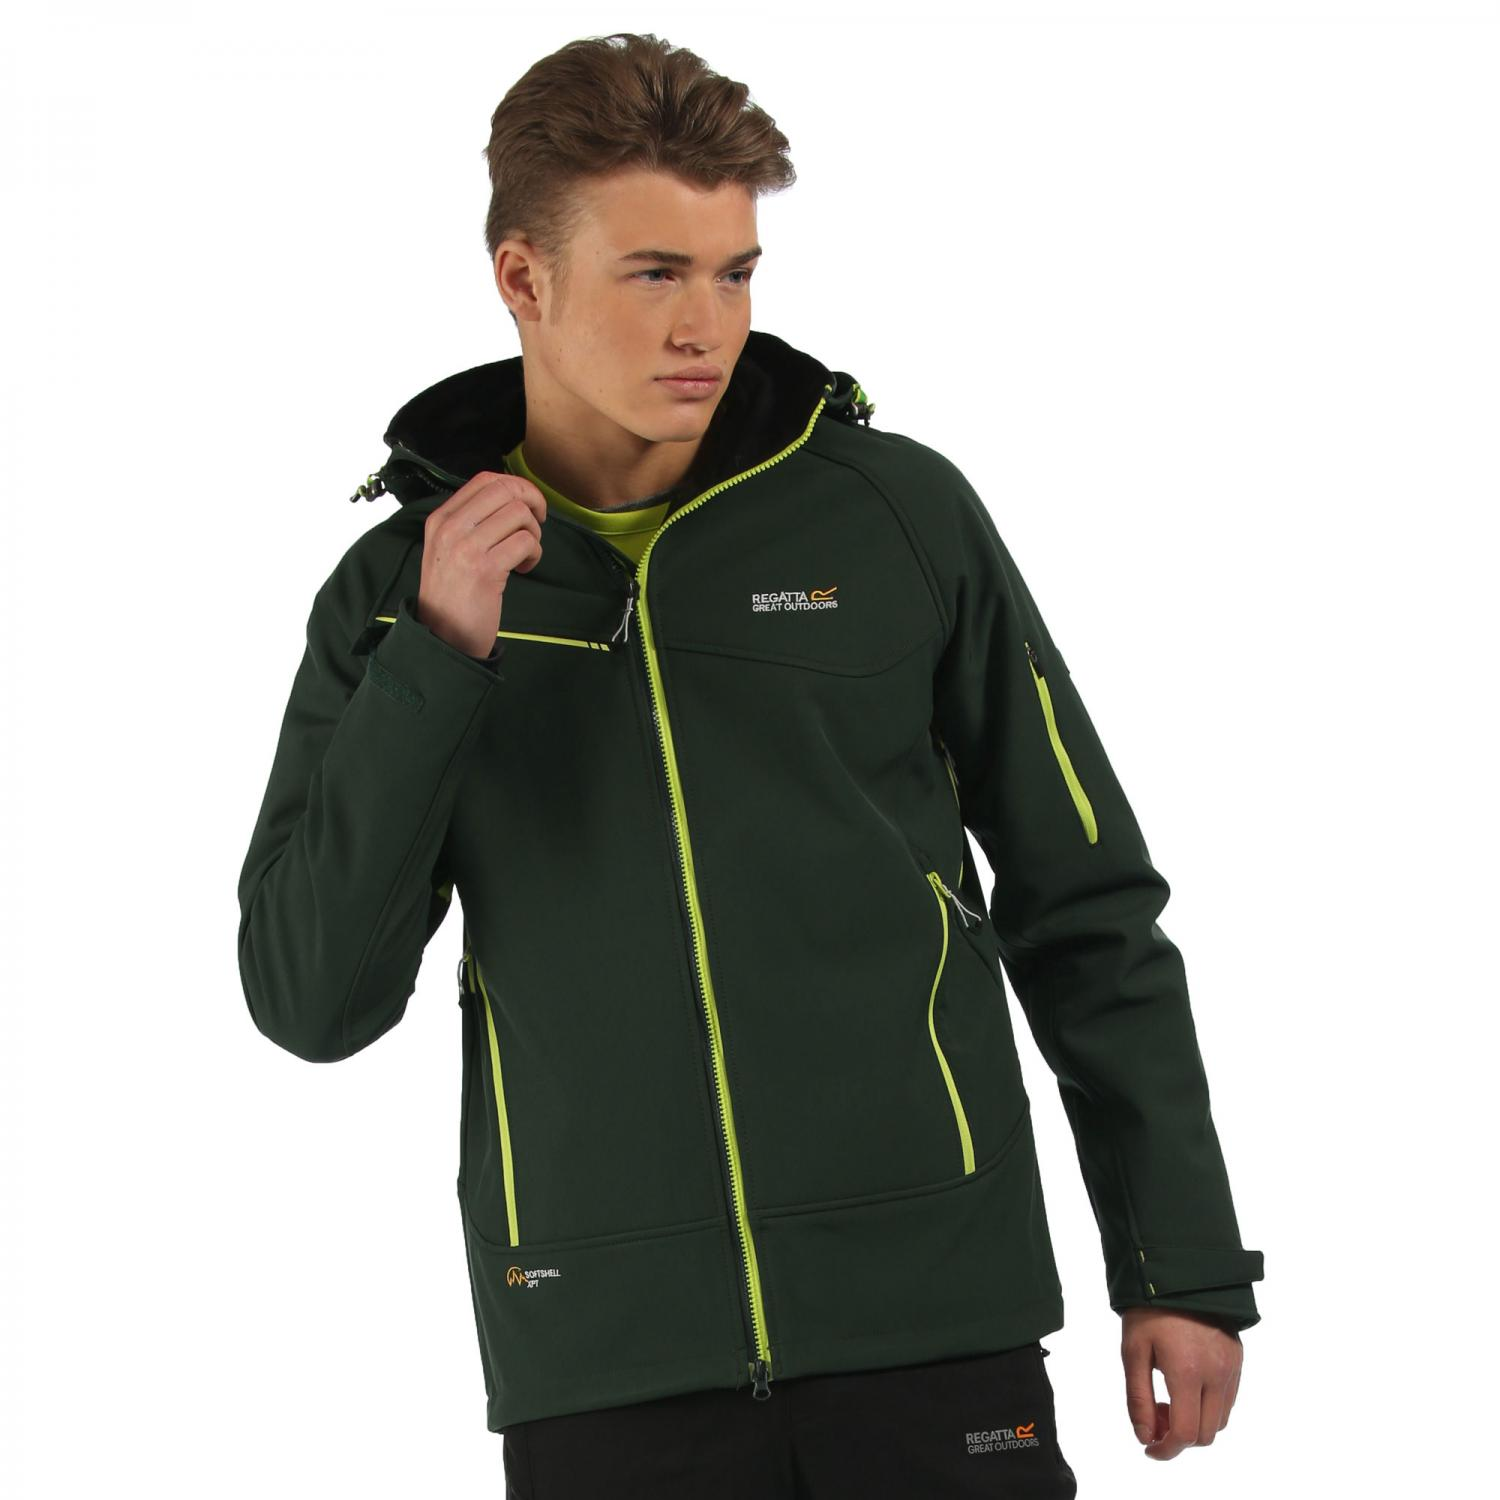 Hewitts II Jacket Dark Spruce